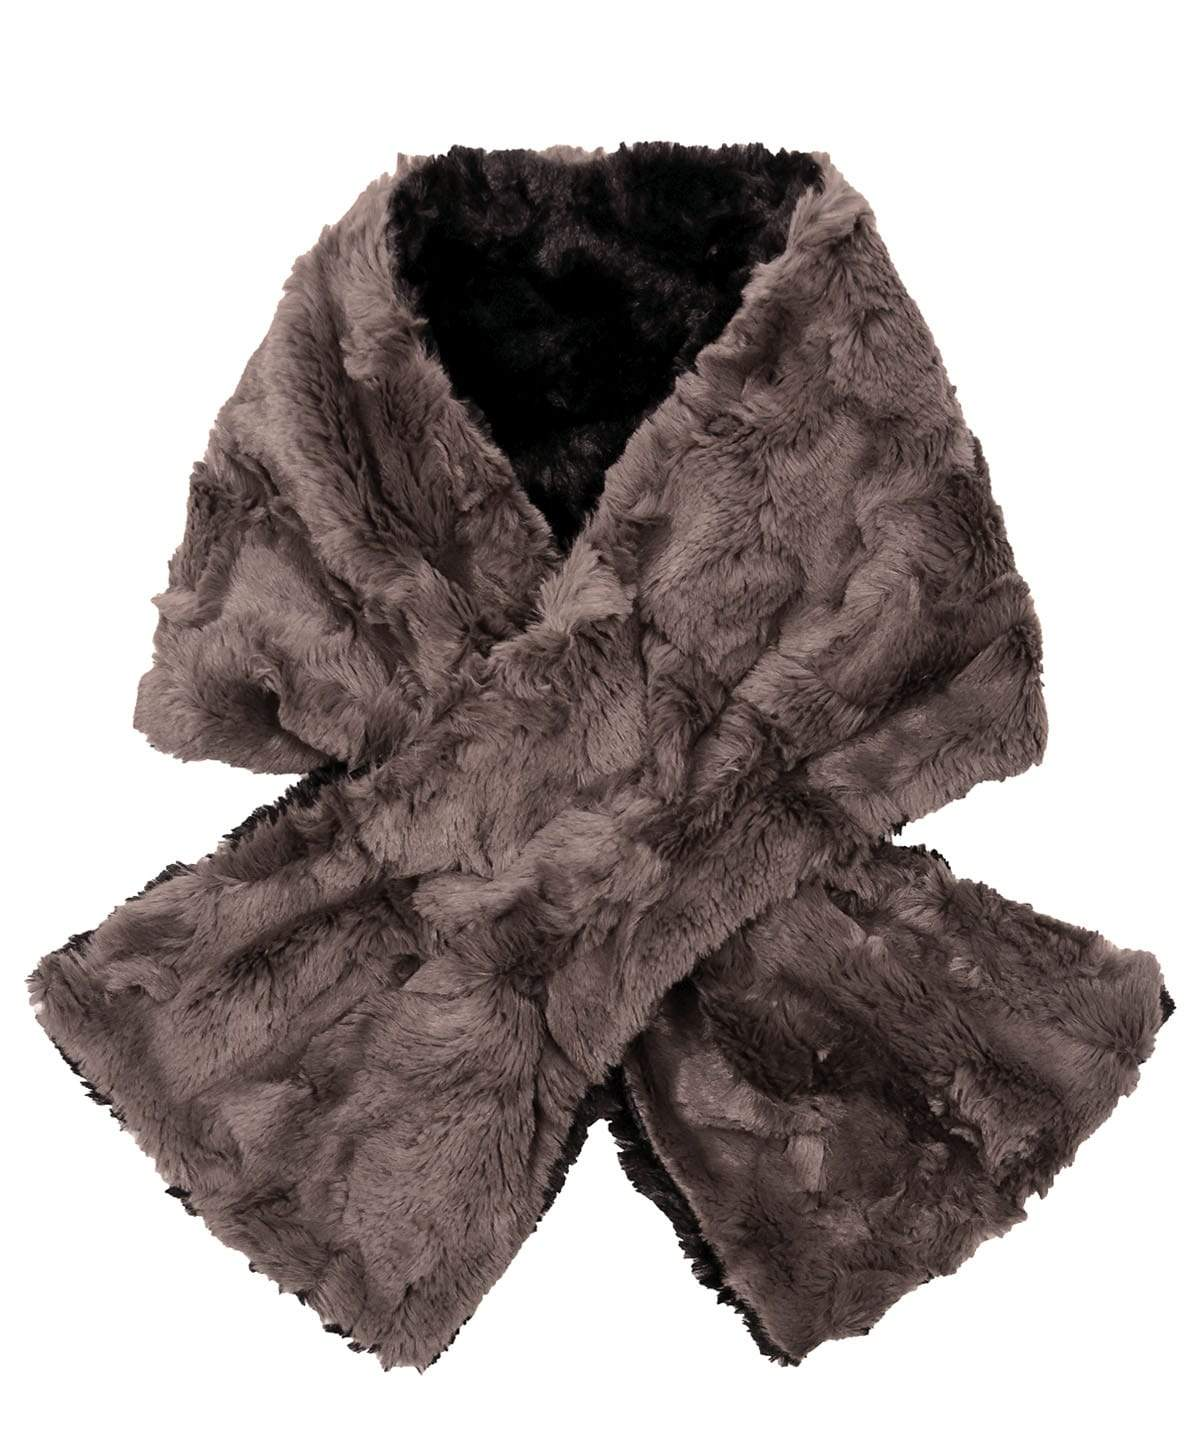 Pull-Thru Scarf - Cuddly Faux Fur in Gray